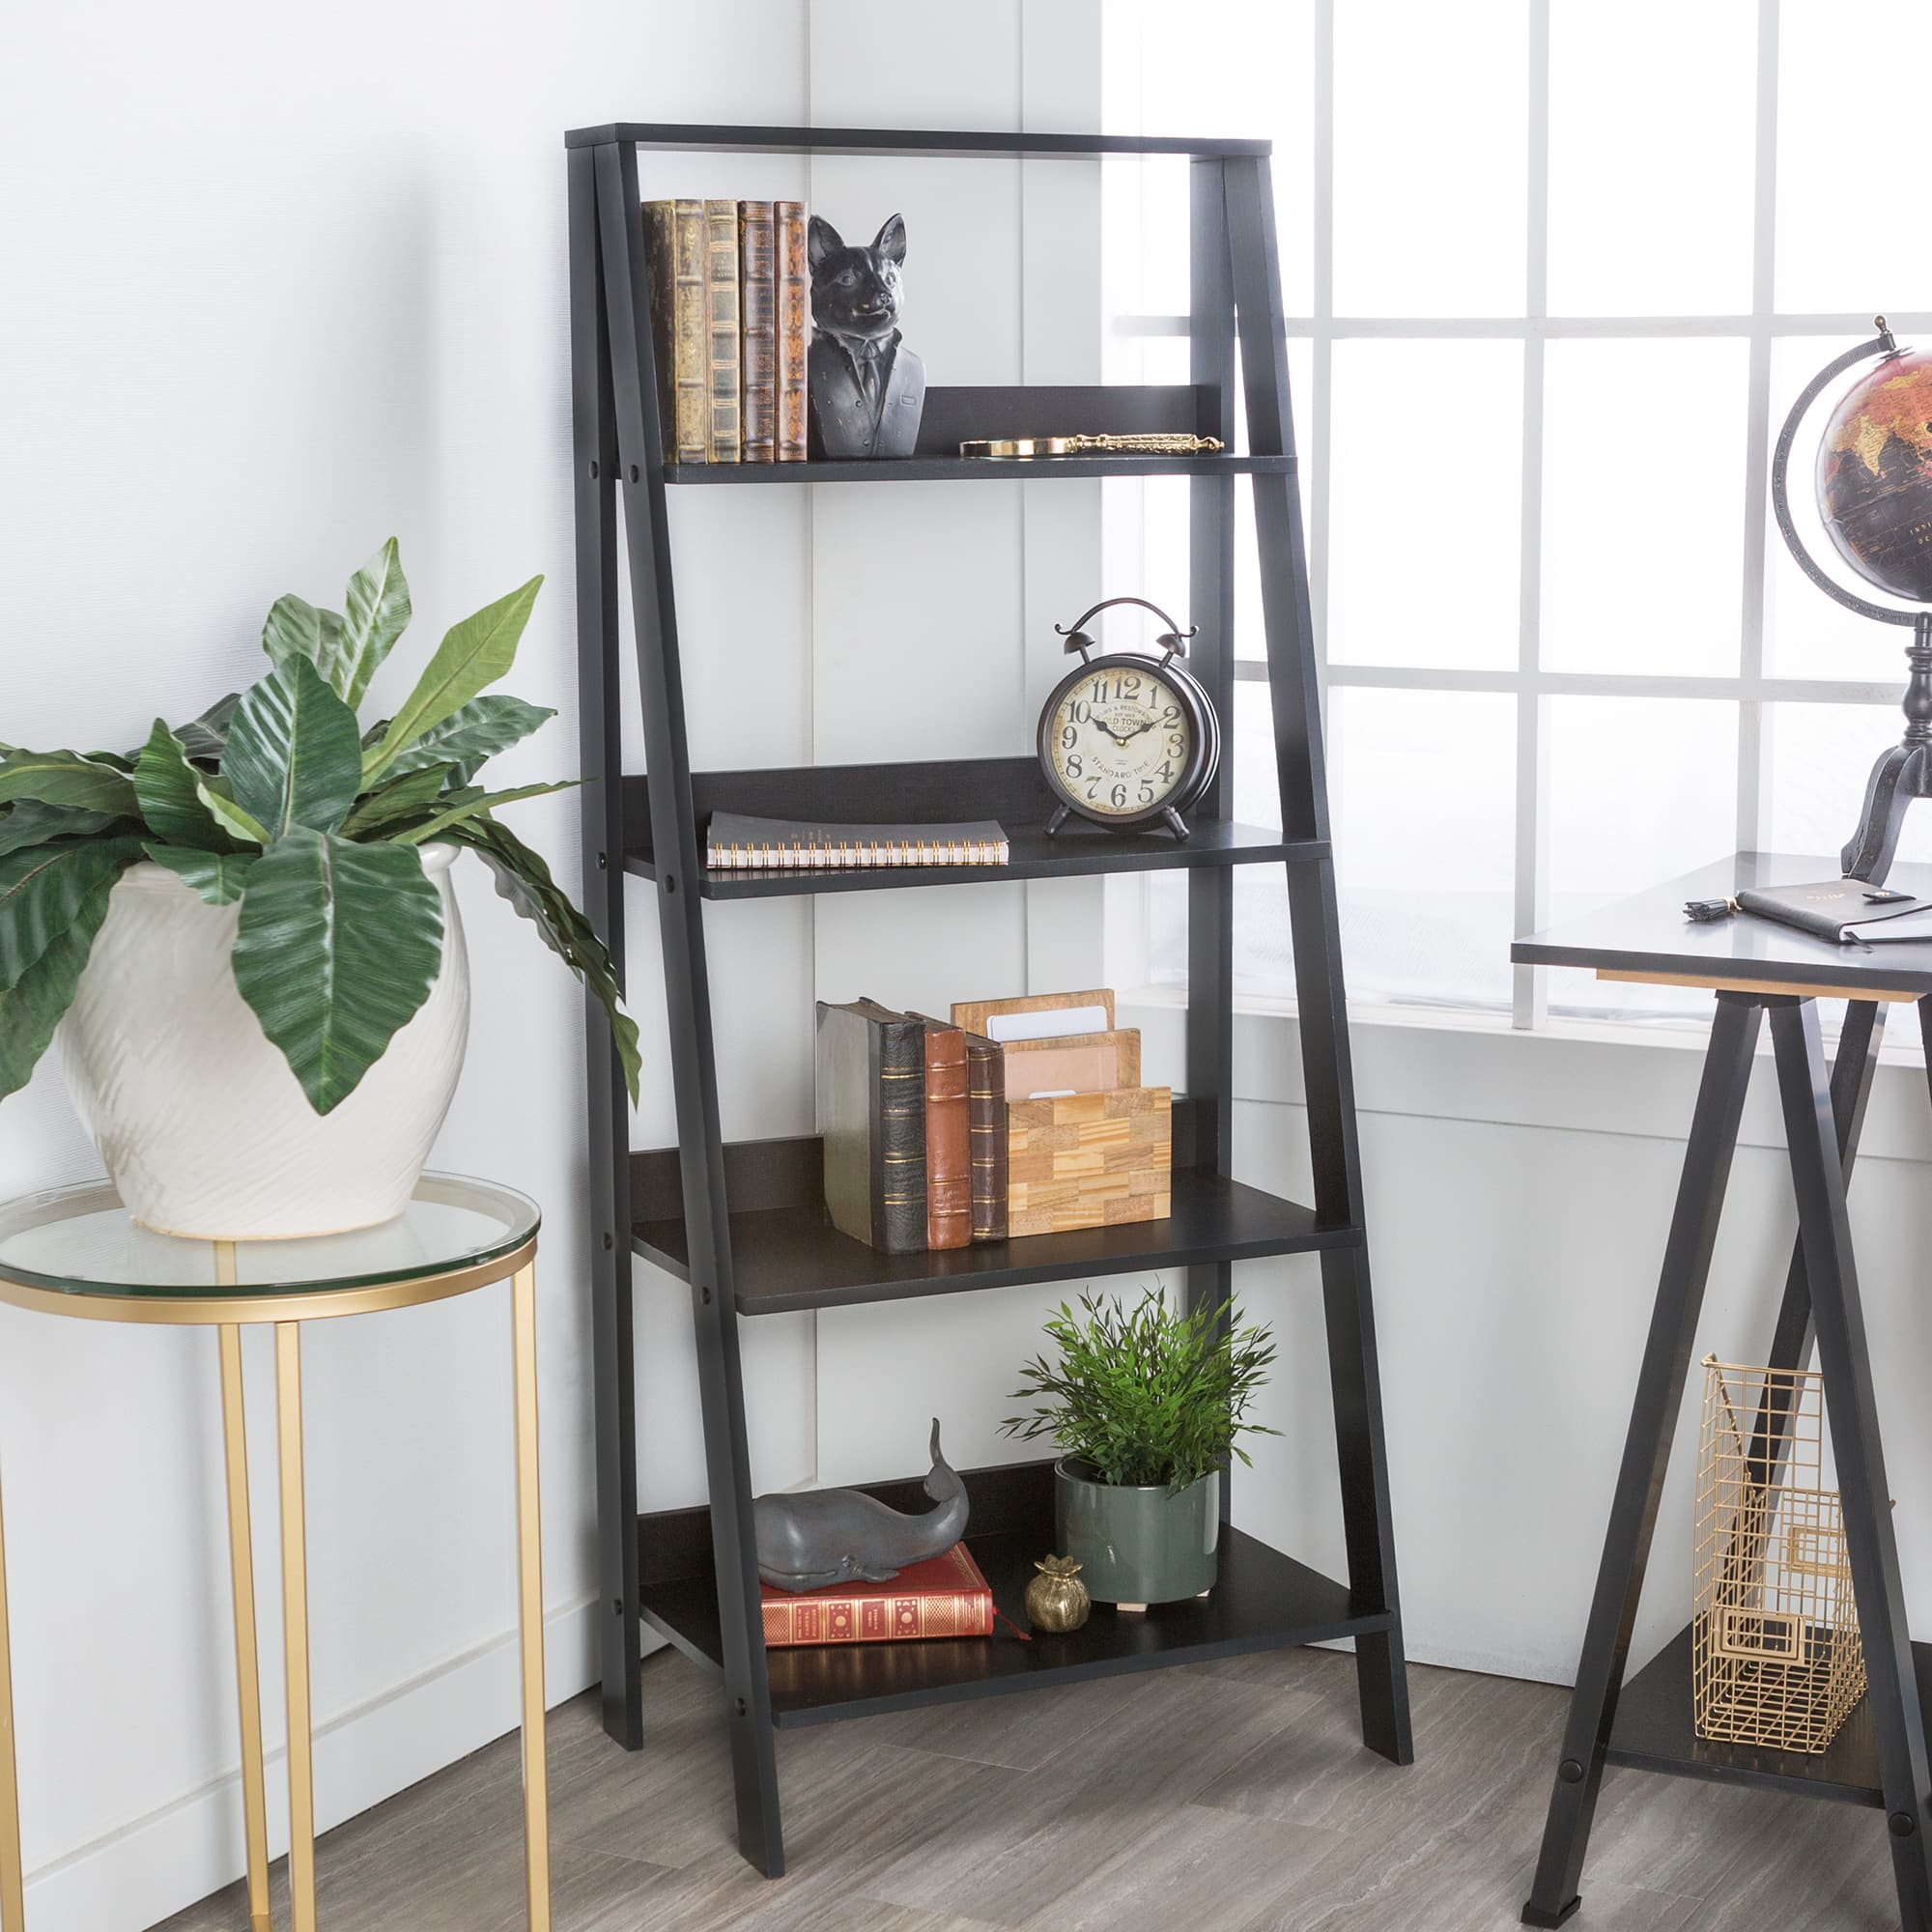 4-Shelf Manor Park Wood Leaning Ladder Bookshelf (black, gray, or white) $49 + Free Shipping